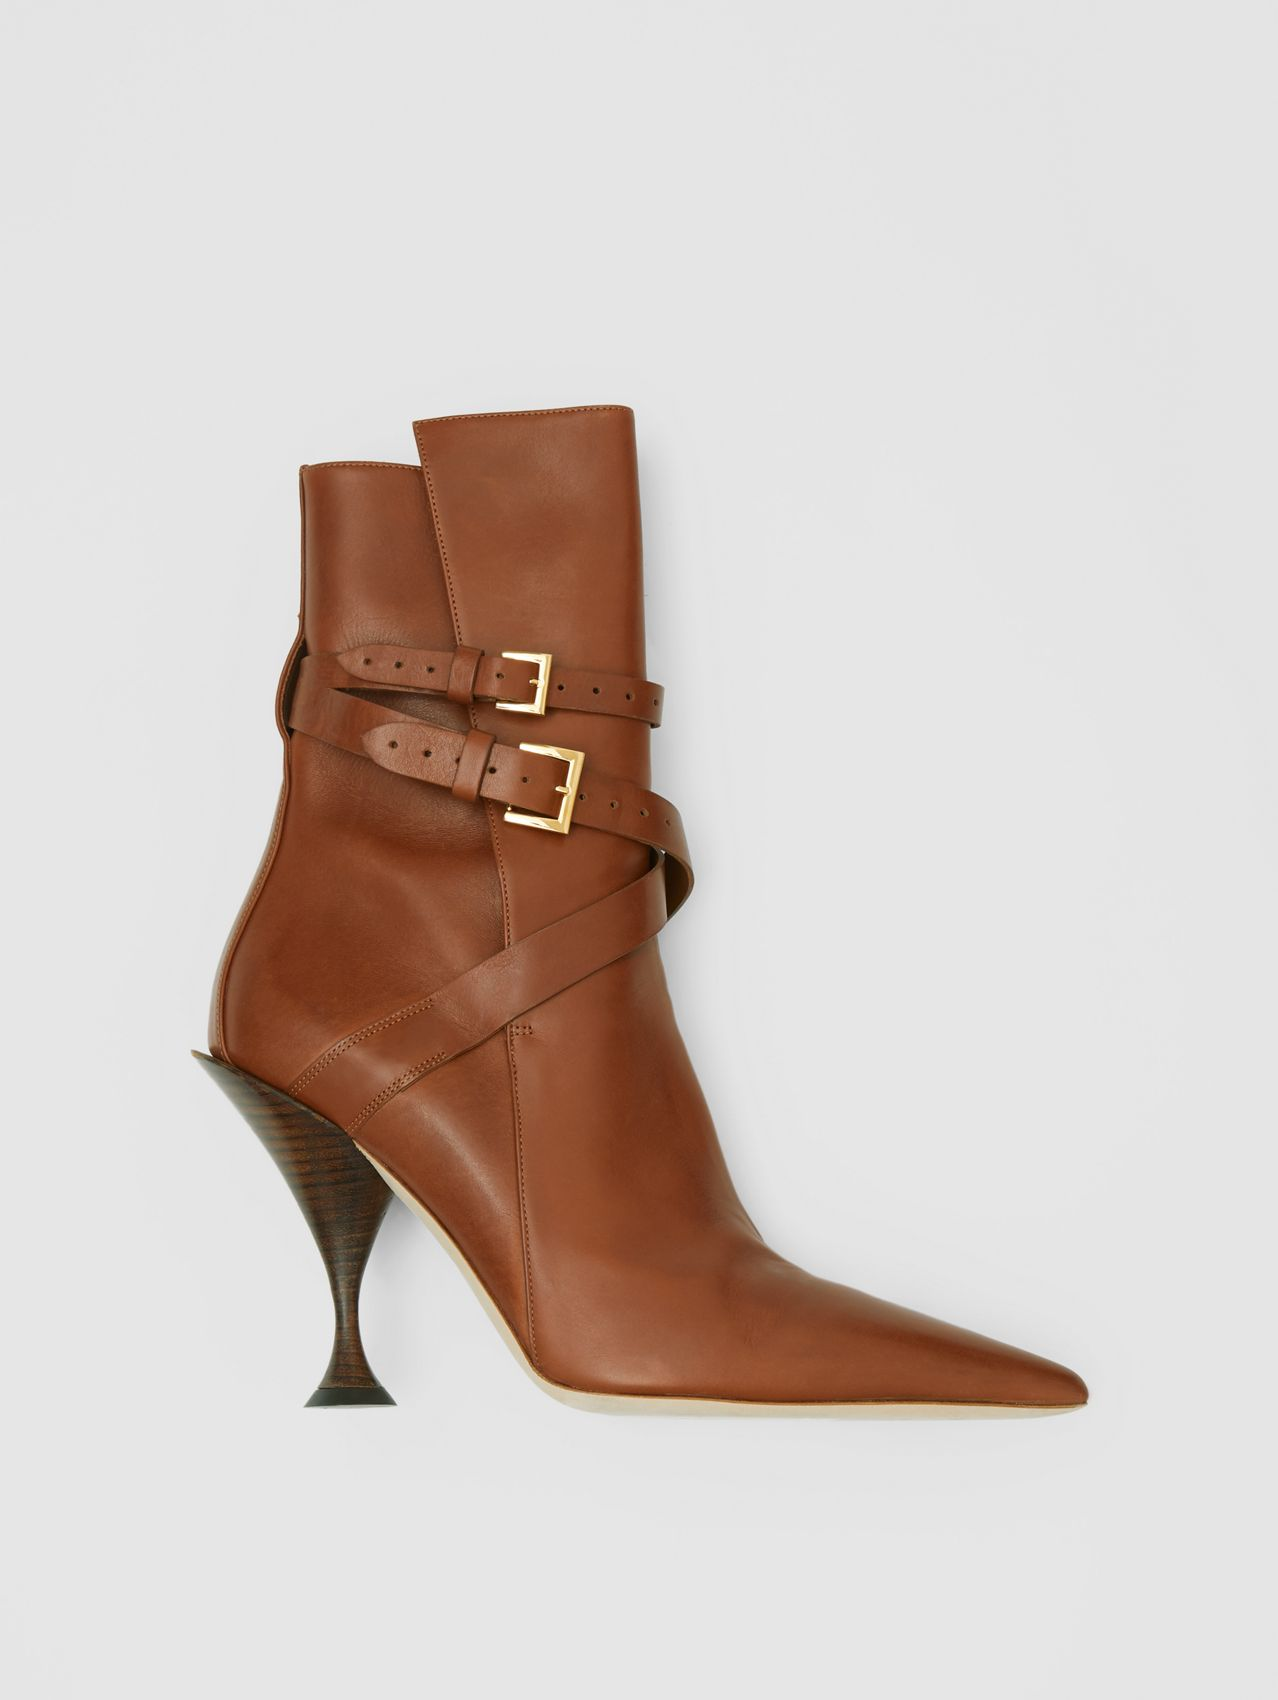 Strap Detail Leather Ankle Boots in Tan